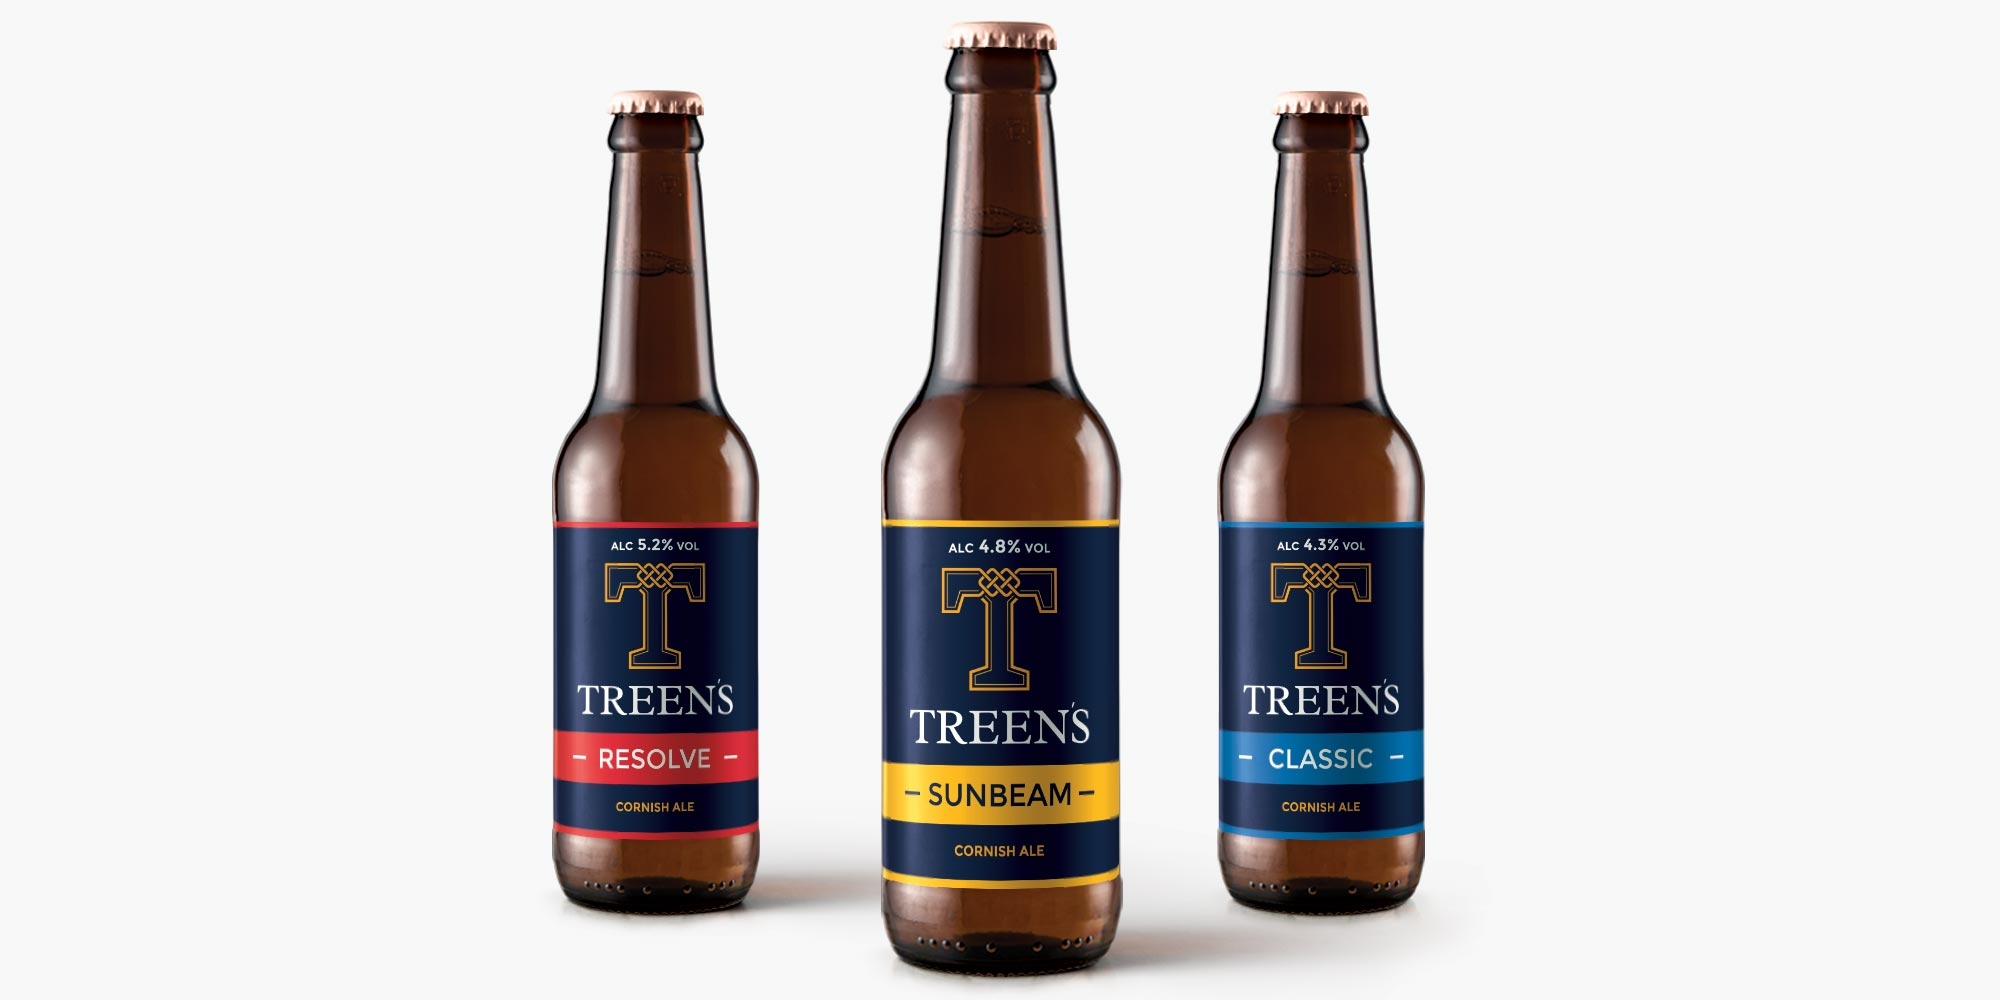 Treen's Brewery Print Design on Beer Labels